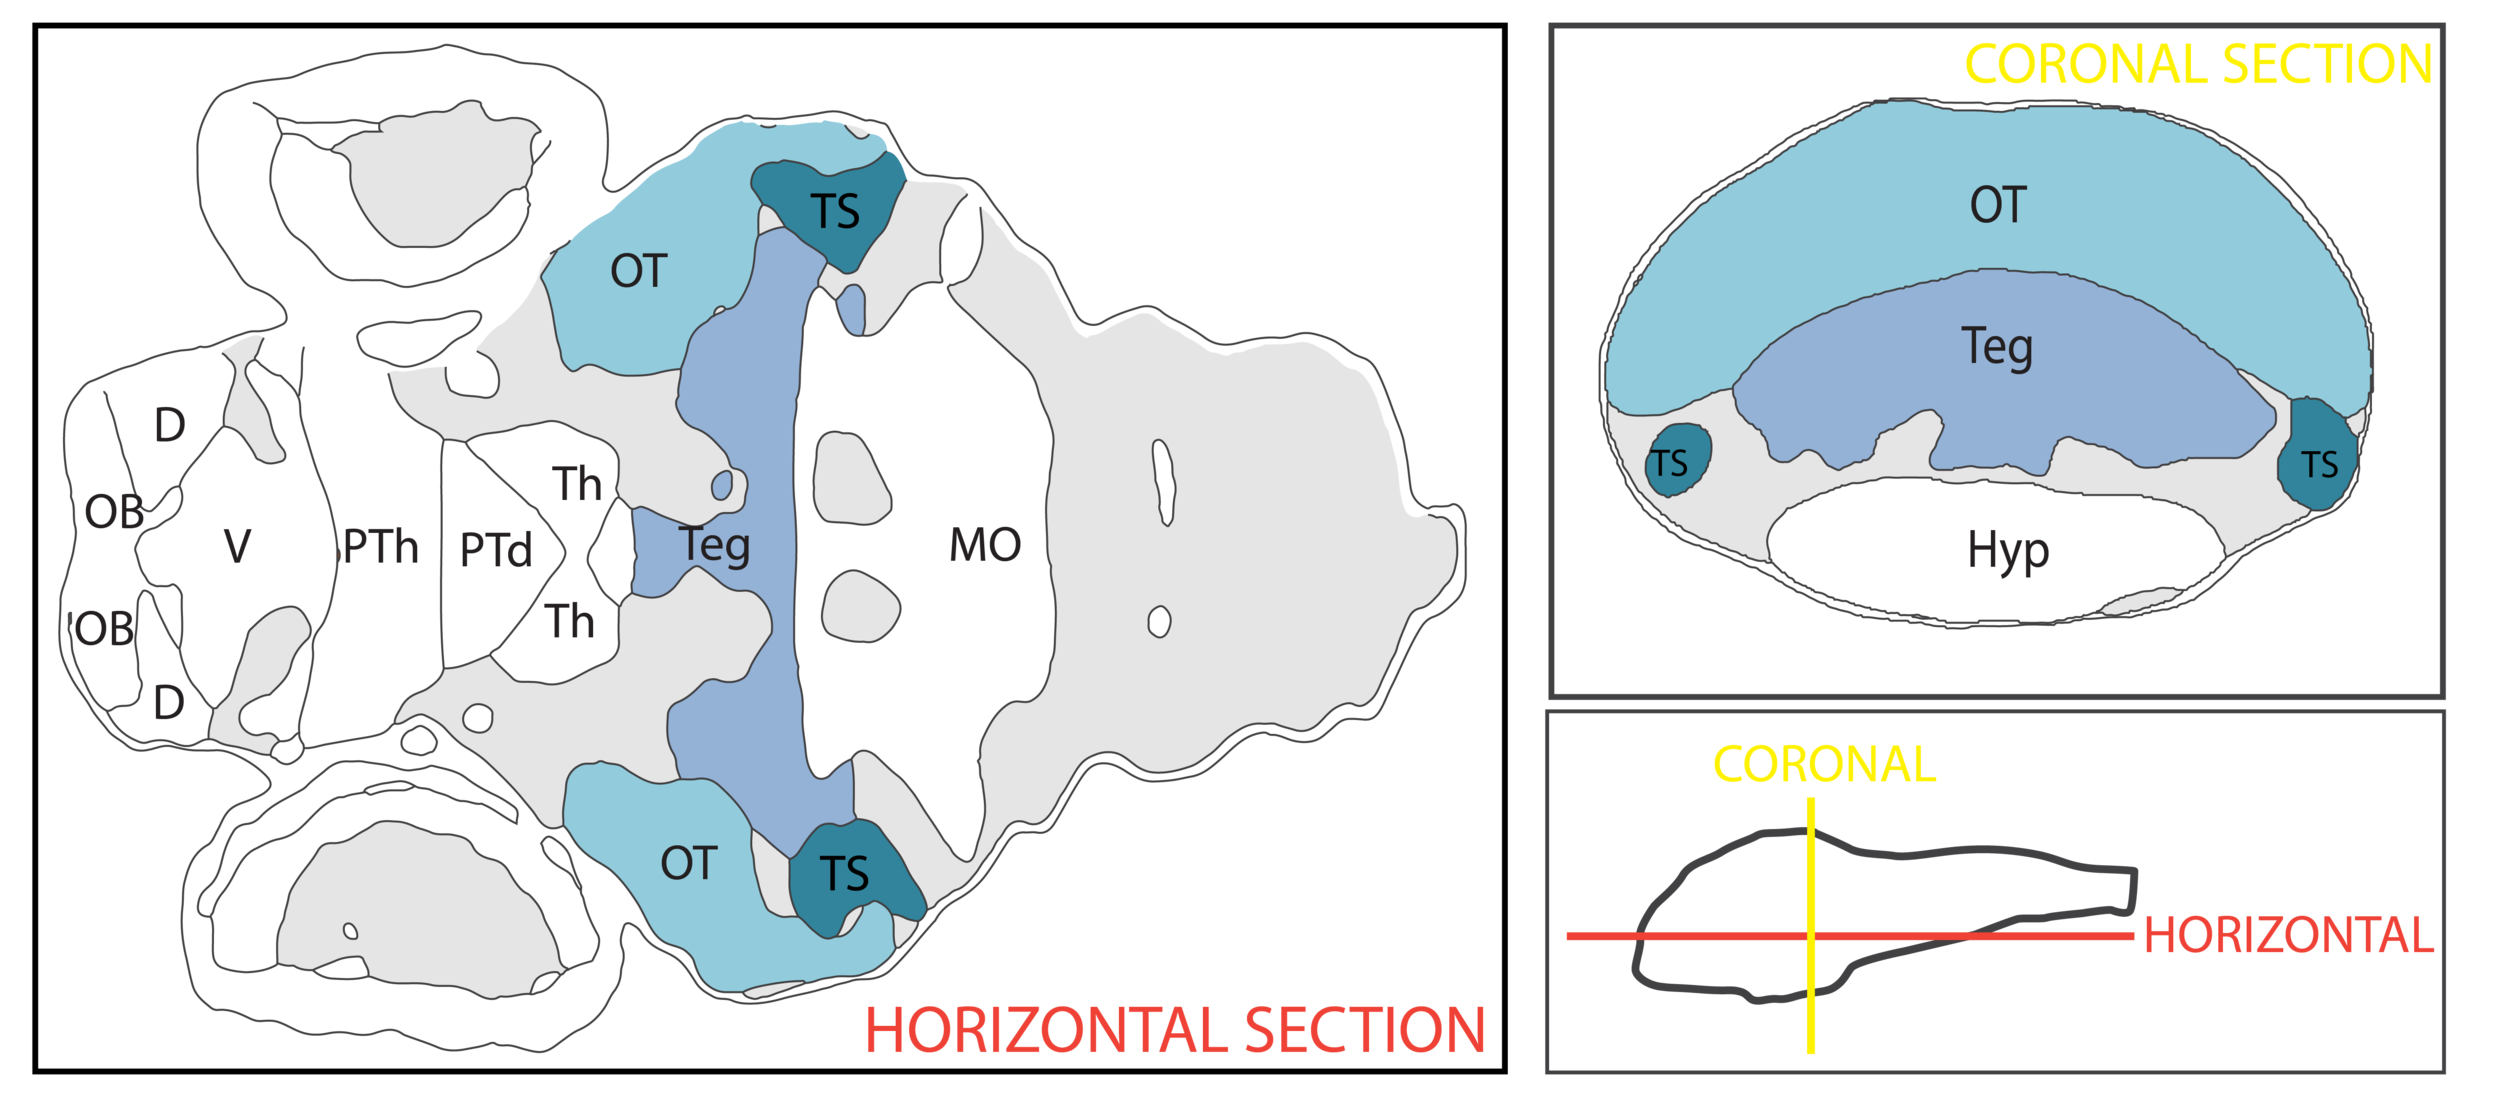 Schematic showing the regions that comprise the midbrain using the anatomical segmentation of 3 day old zebrafish larval brain by Thomas Müller, Olaf Ronneberger, Wolfgang Driever and colleagues. For details see Ronneberger et al., Nat. Meth. 2012 and  http://vibez.informatik.uni-freiburg.de   Abbreviations: OT, optic tectum; Teg, tegmentum; TS, torus semicircularis.